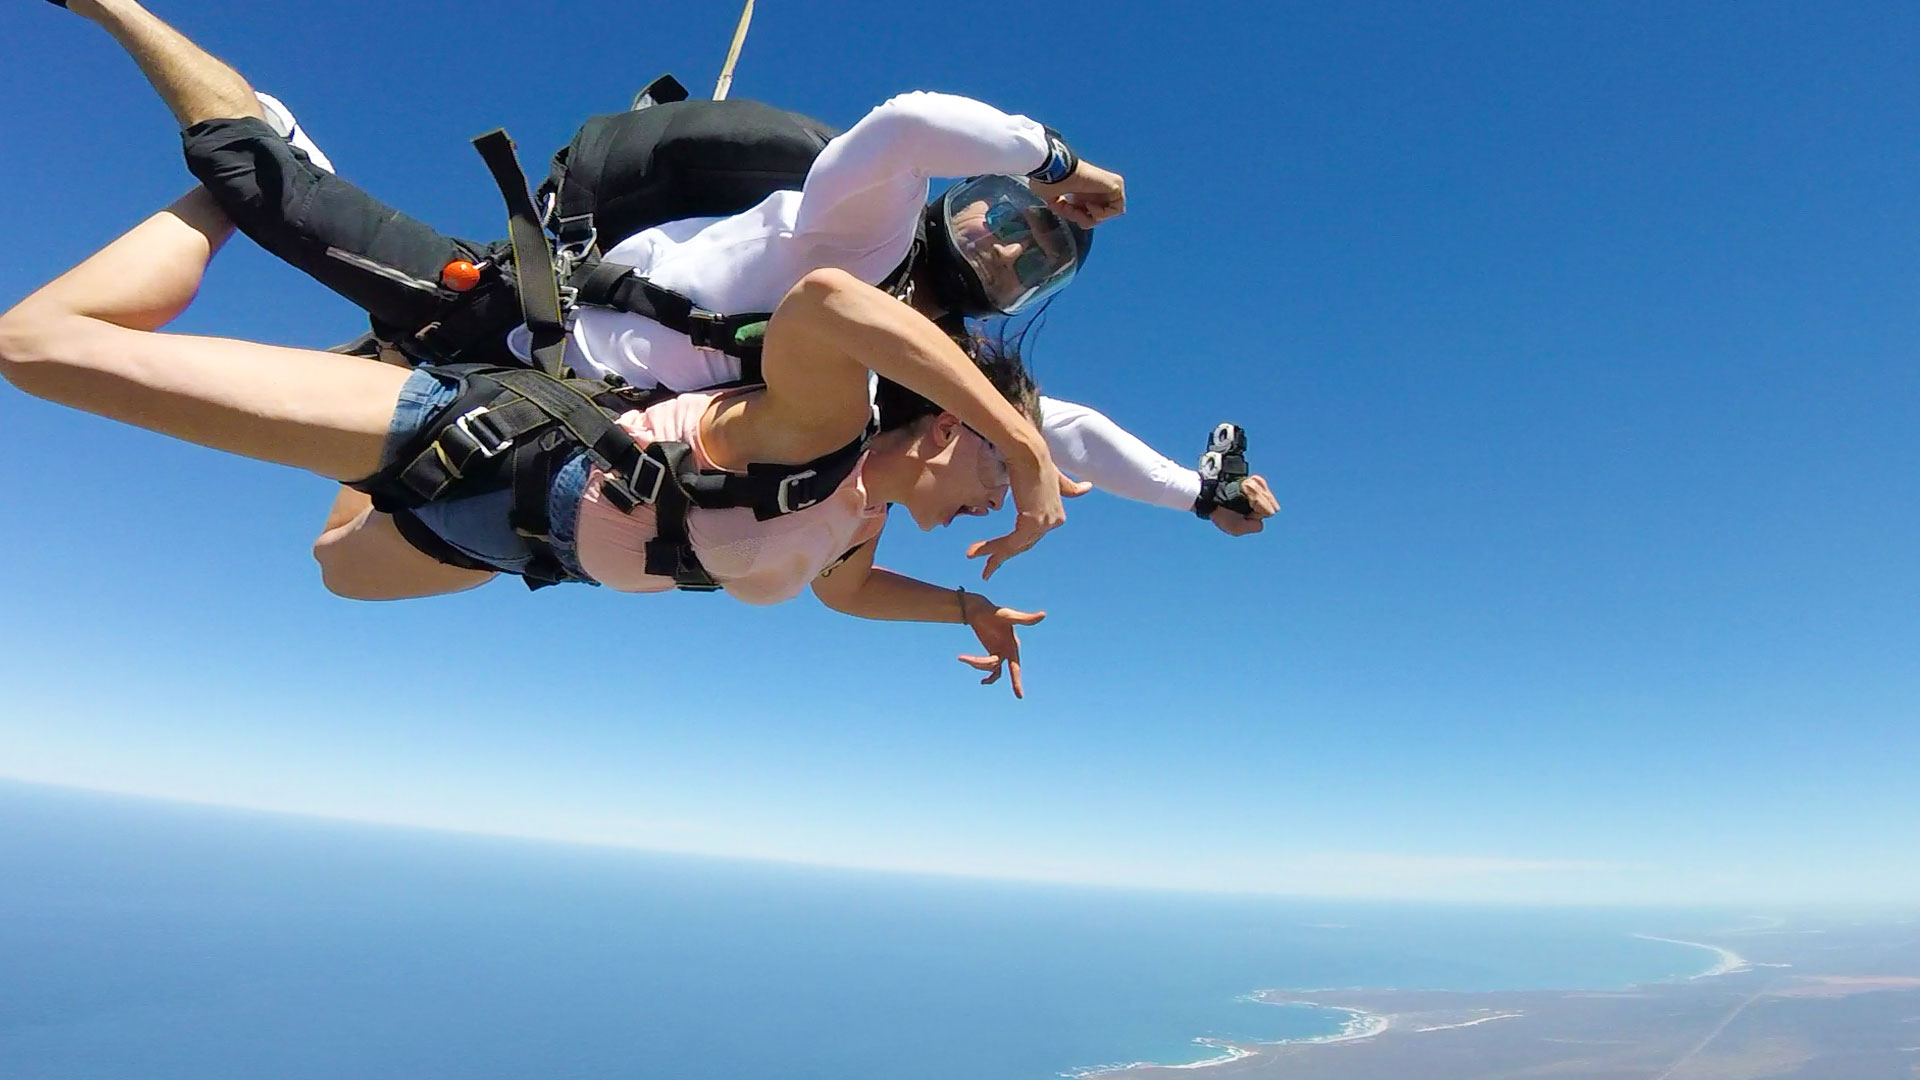 Skydiving Johannesburg (Prices, Specials, Offers) 2020 ...